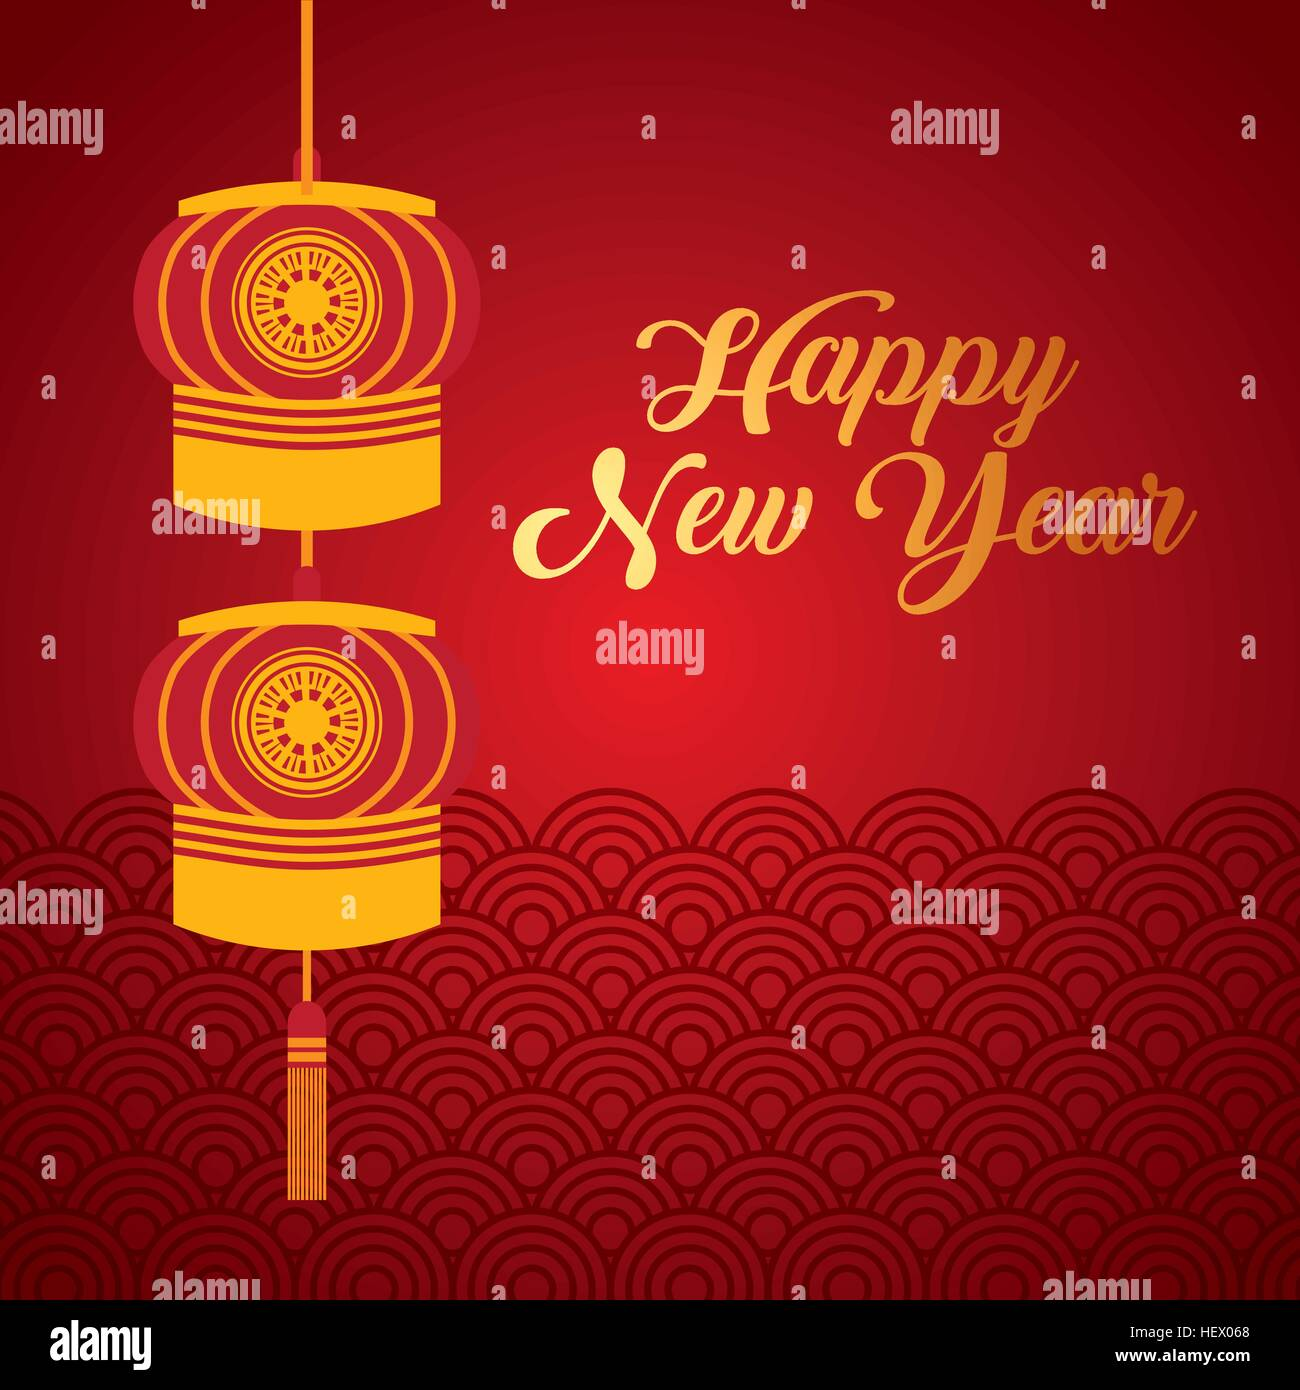 Happy New Year Card With Chinese Lantern Decorations Hanging Over